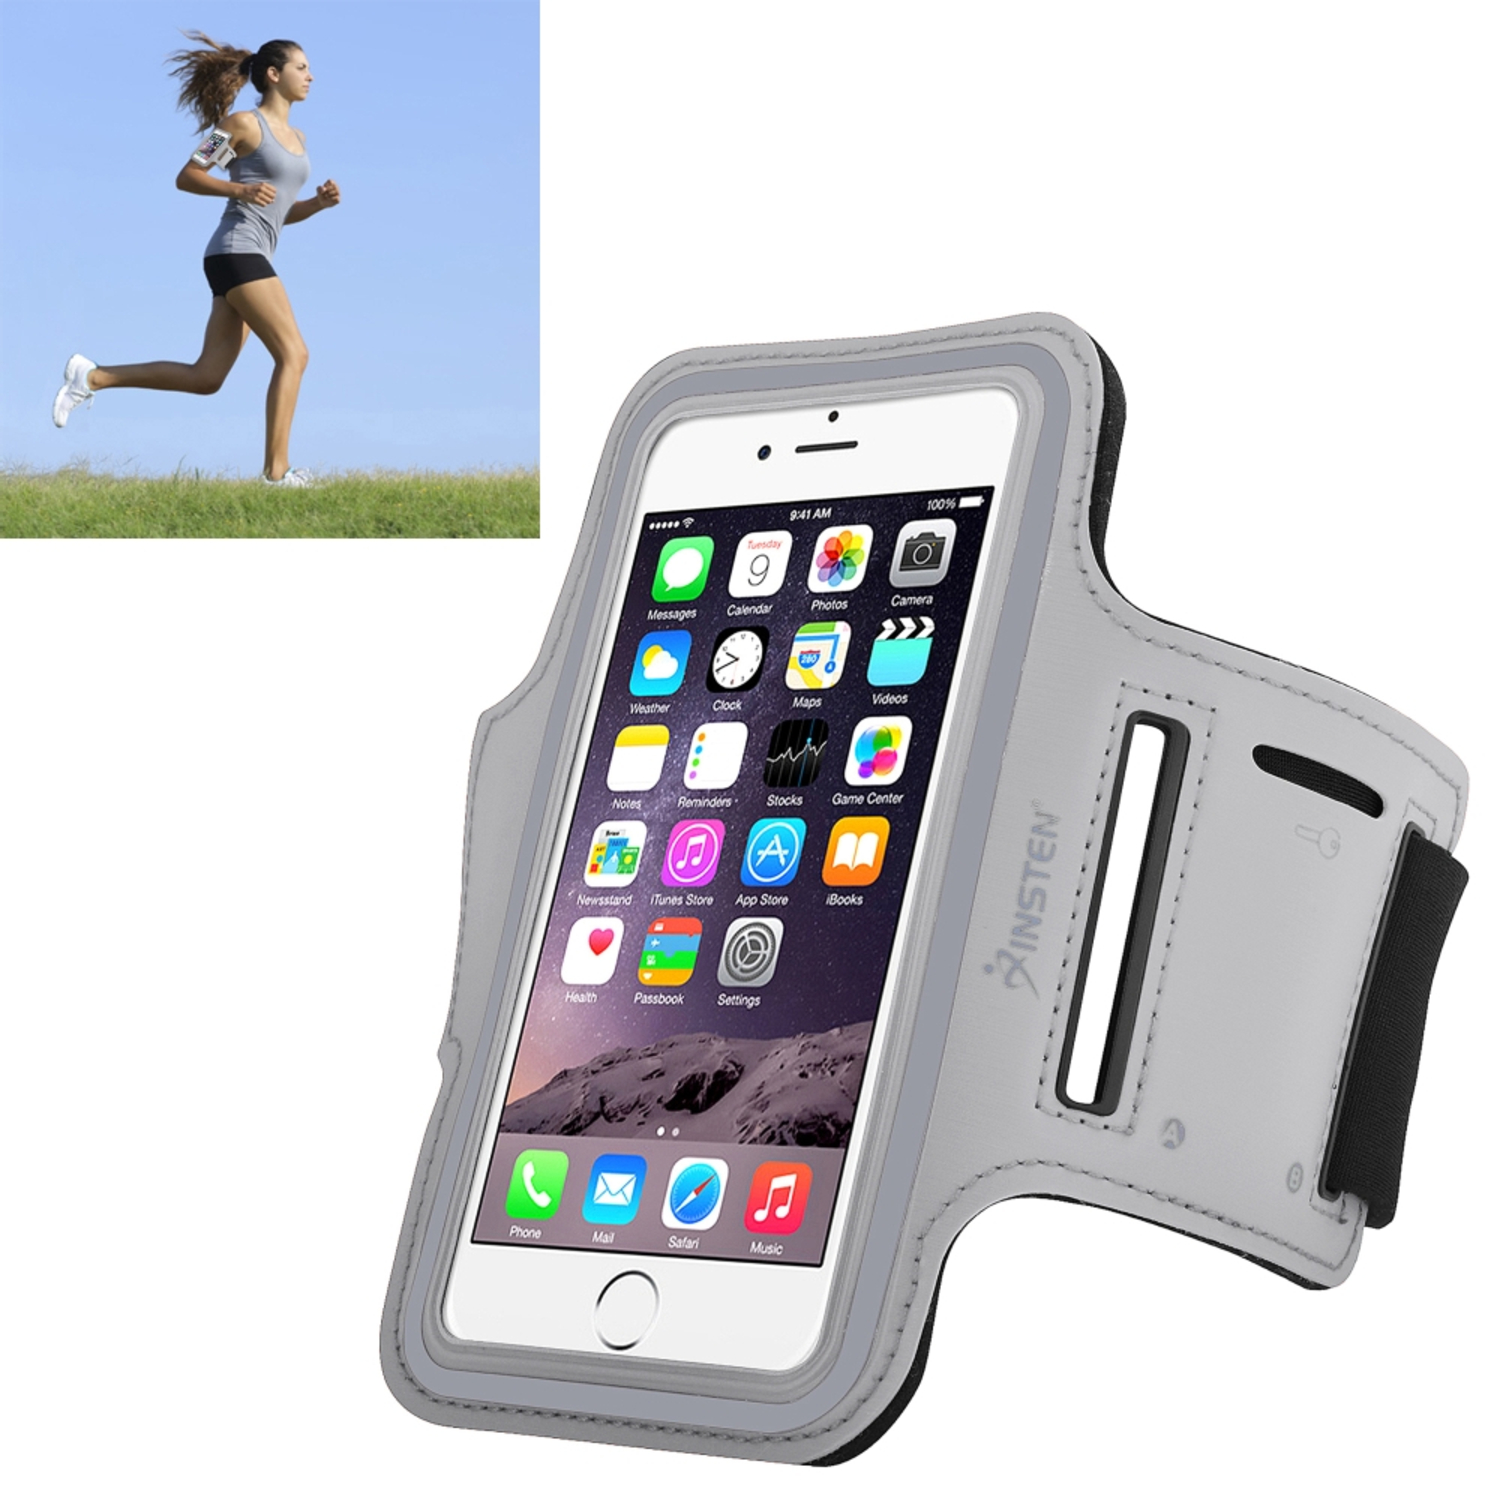 Insten 2037123 Universal Armband For Sports Gym Running